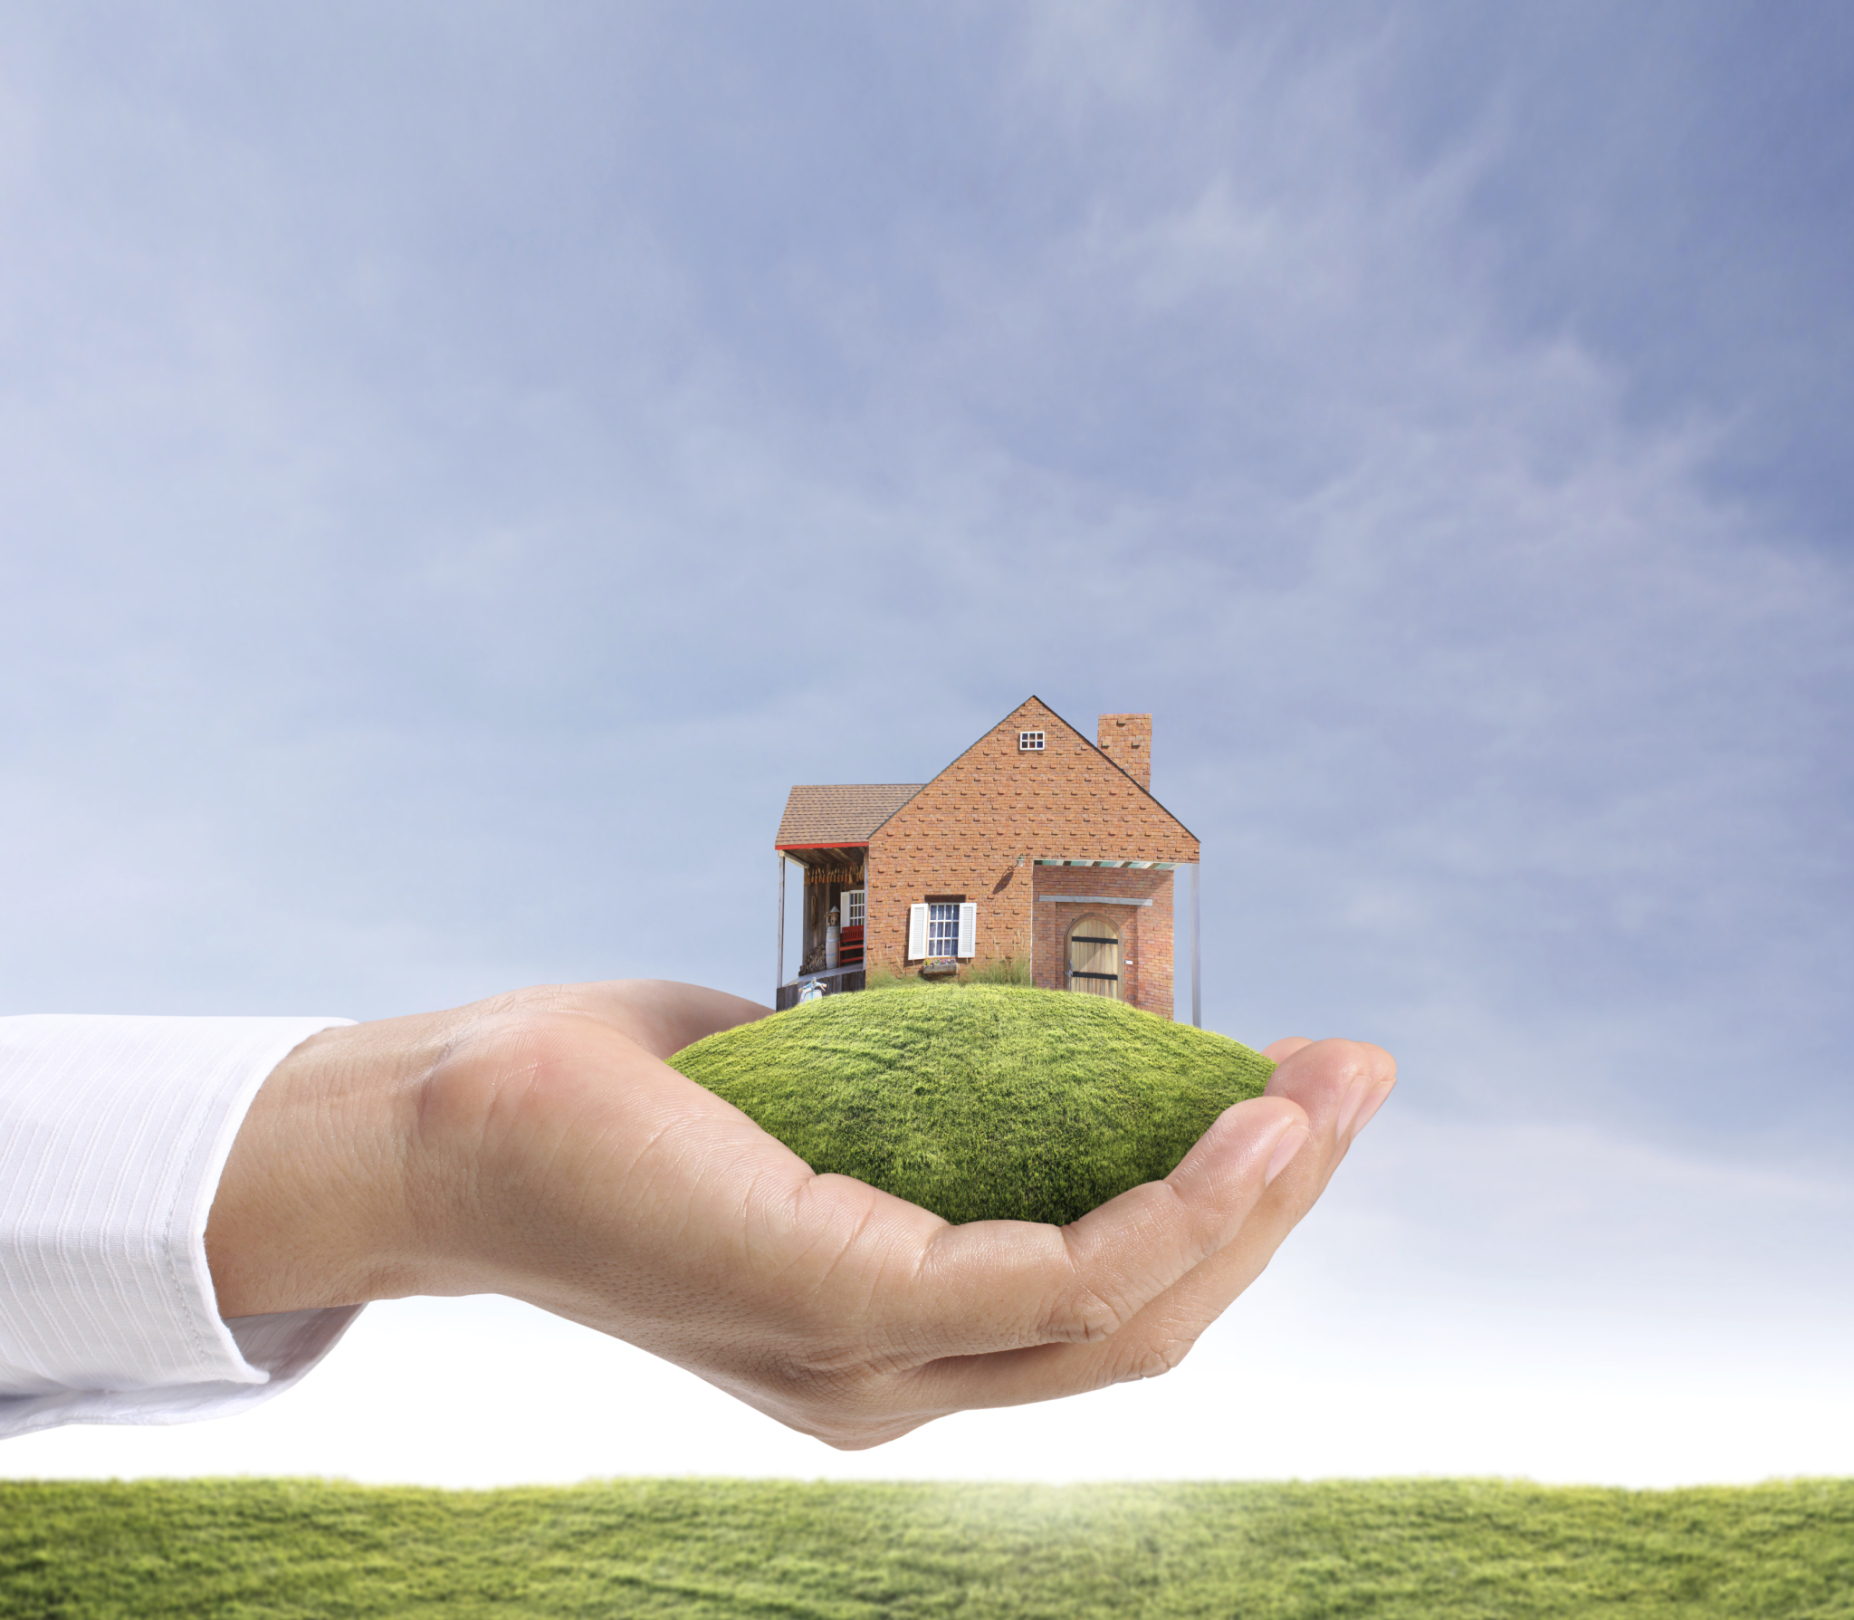 Indian Real Estate may see fresh investments from NRIs